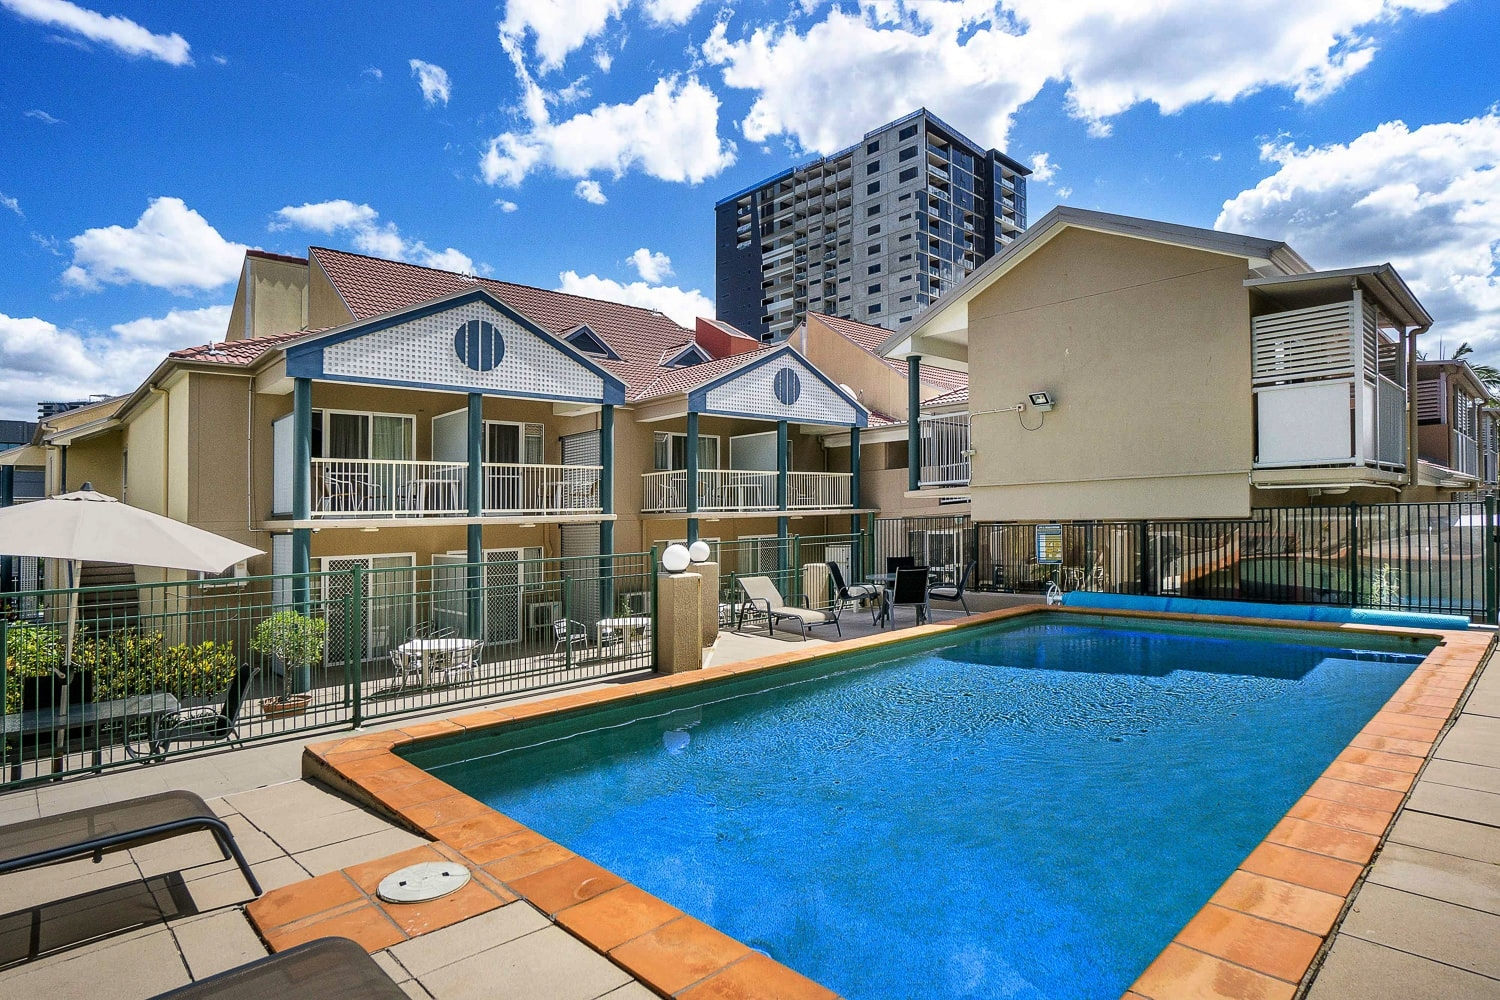 TOOWONG INN & SUITES   Boutique Motel Accommodation In The Heart Of Toowong Brisbane   Book Direct